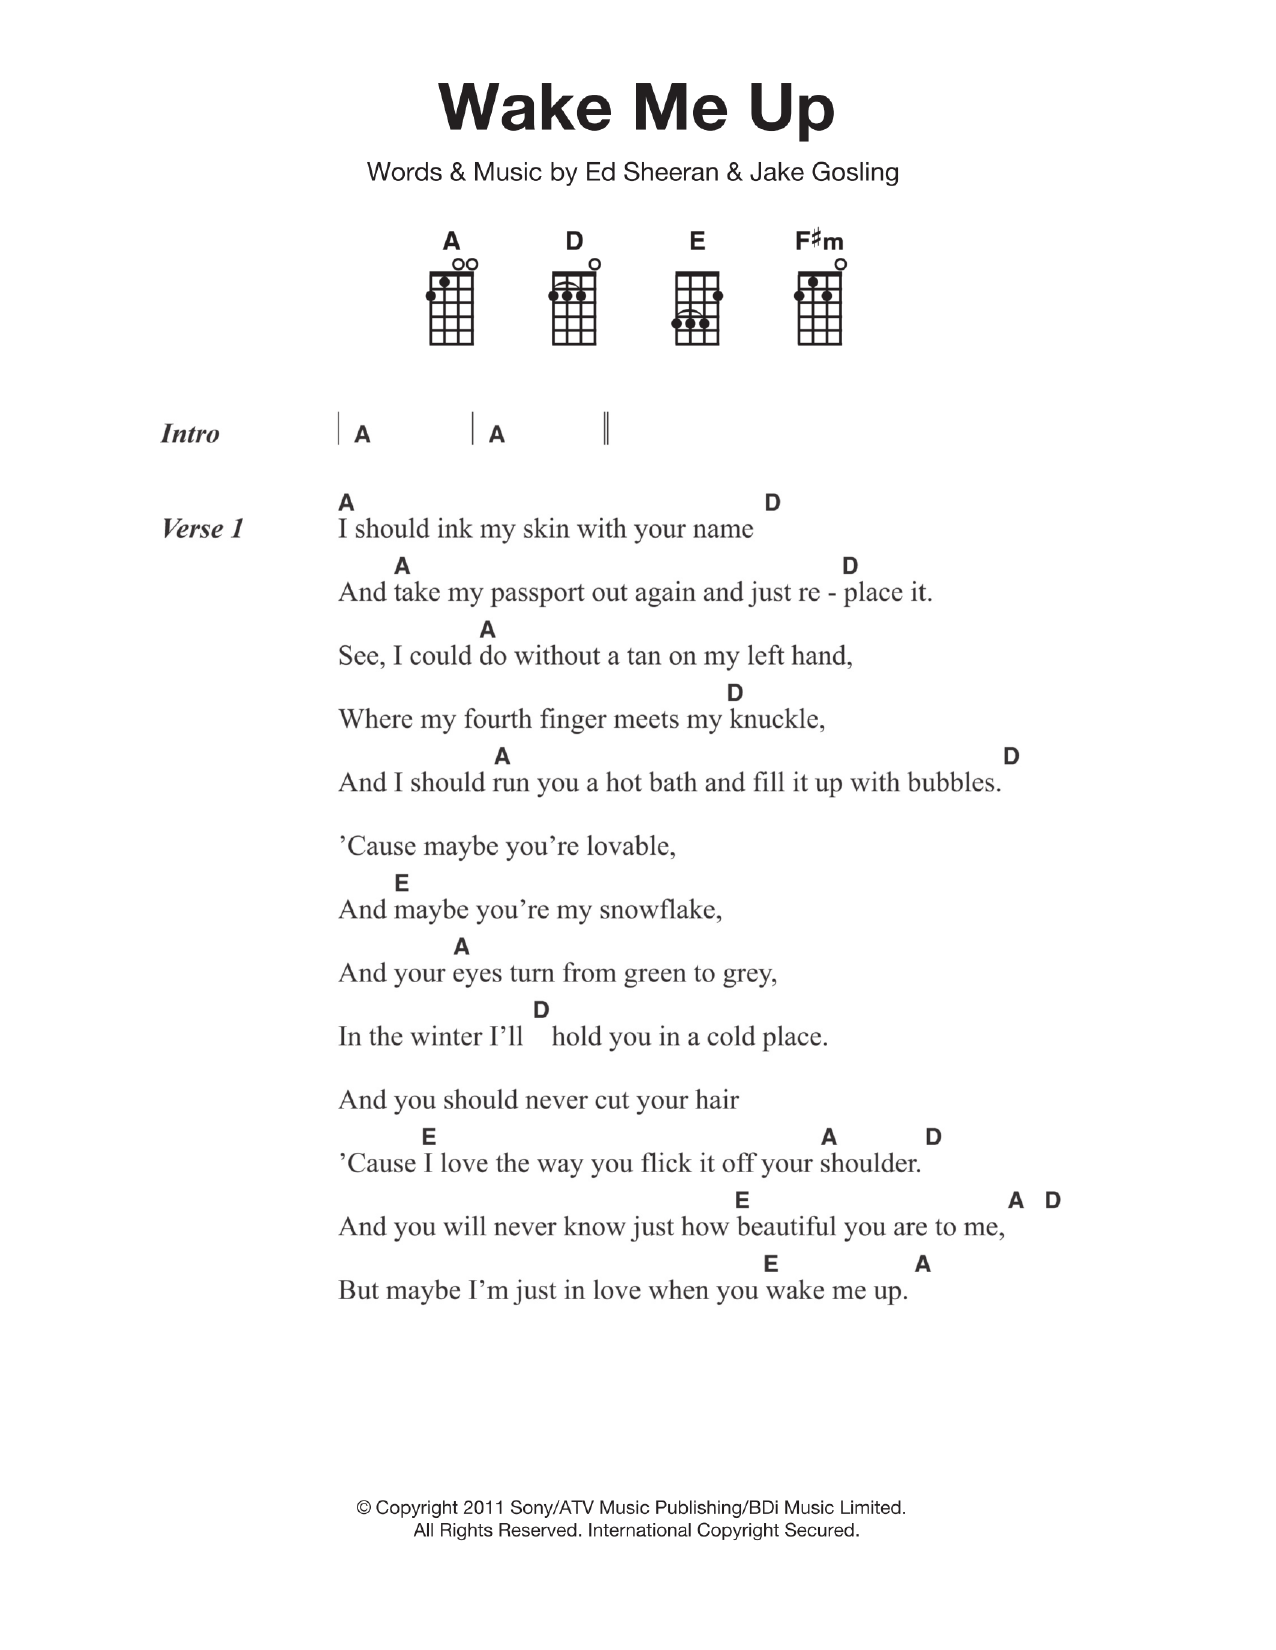 Wake Me Up Sheet Music  Ed Sheeran  Piano, Vocal & Guitar